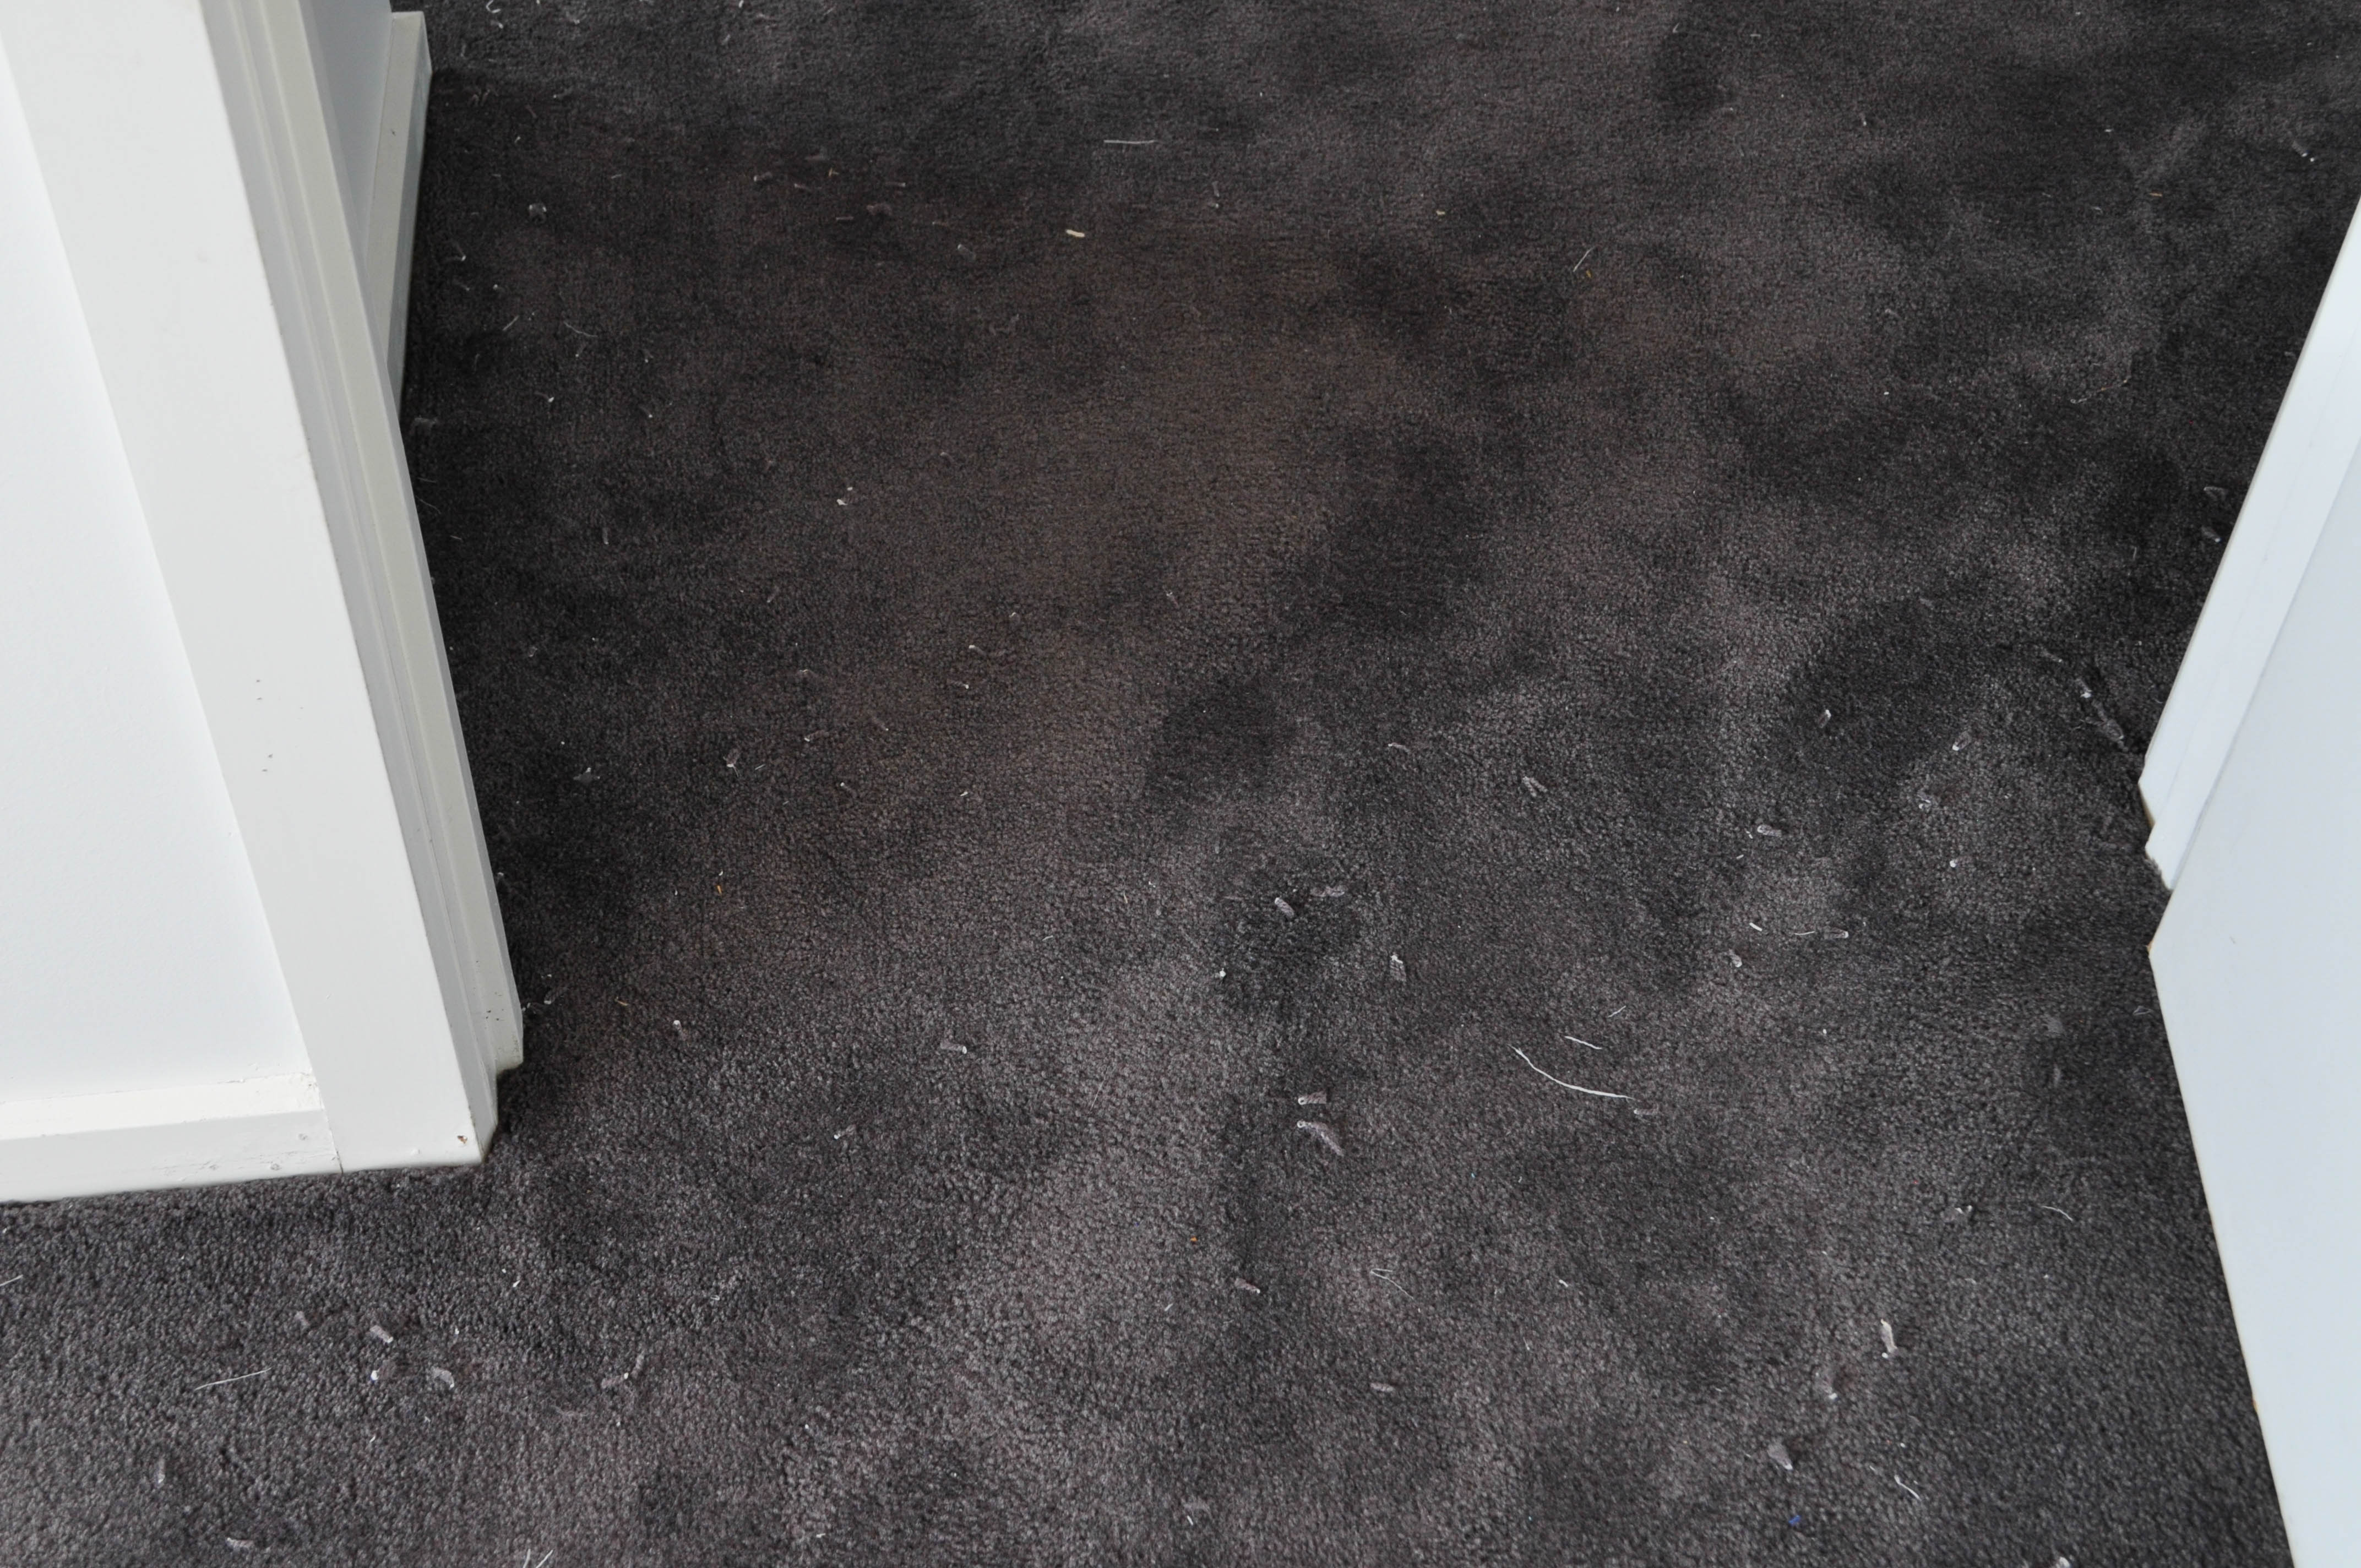 charcoal colored, plush-pile carpet installed in a room in the suburb of Caroline Springs Vic 3023 by Concord Floors.